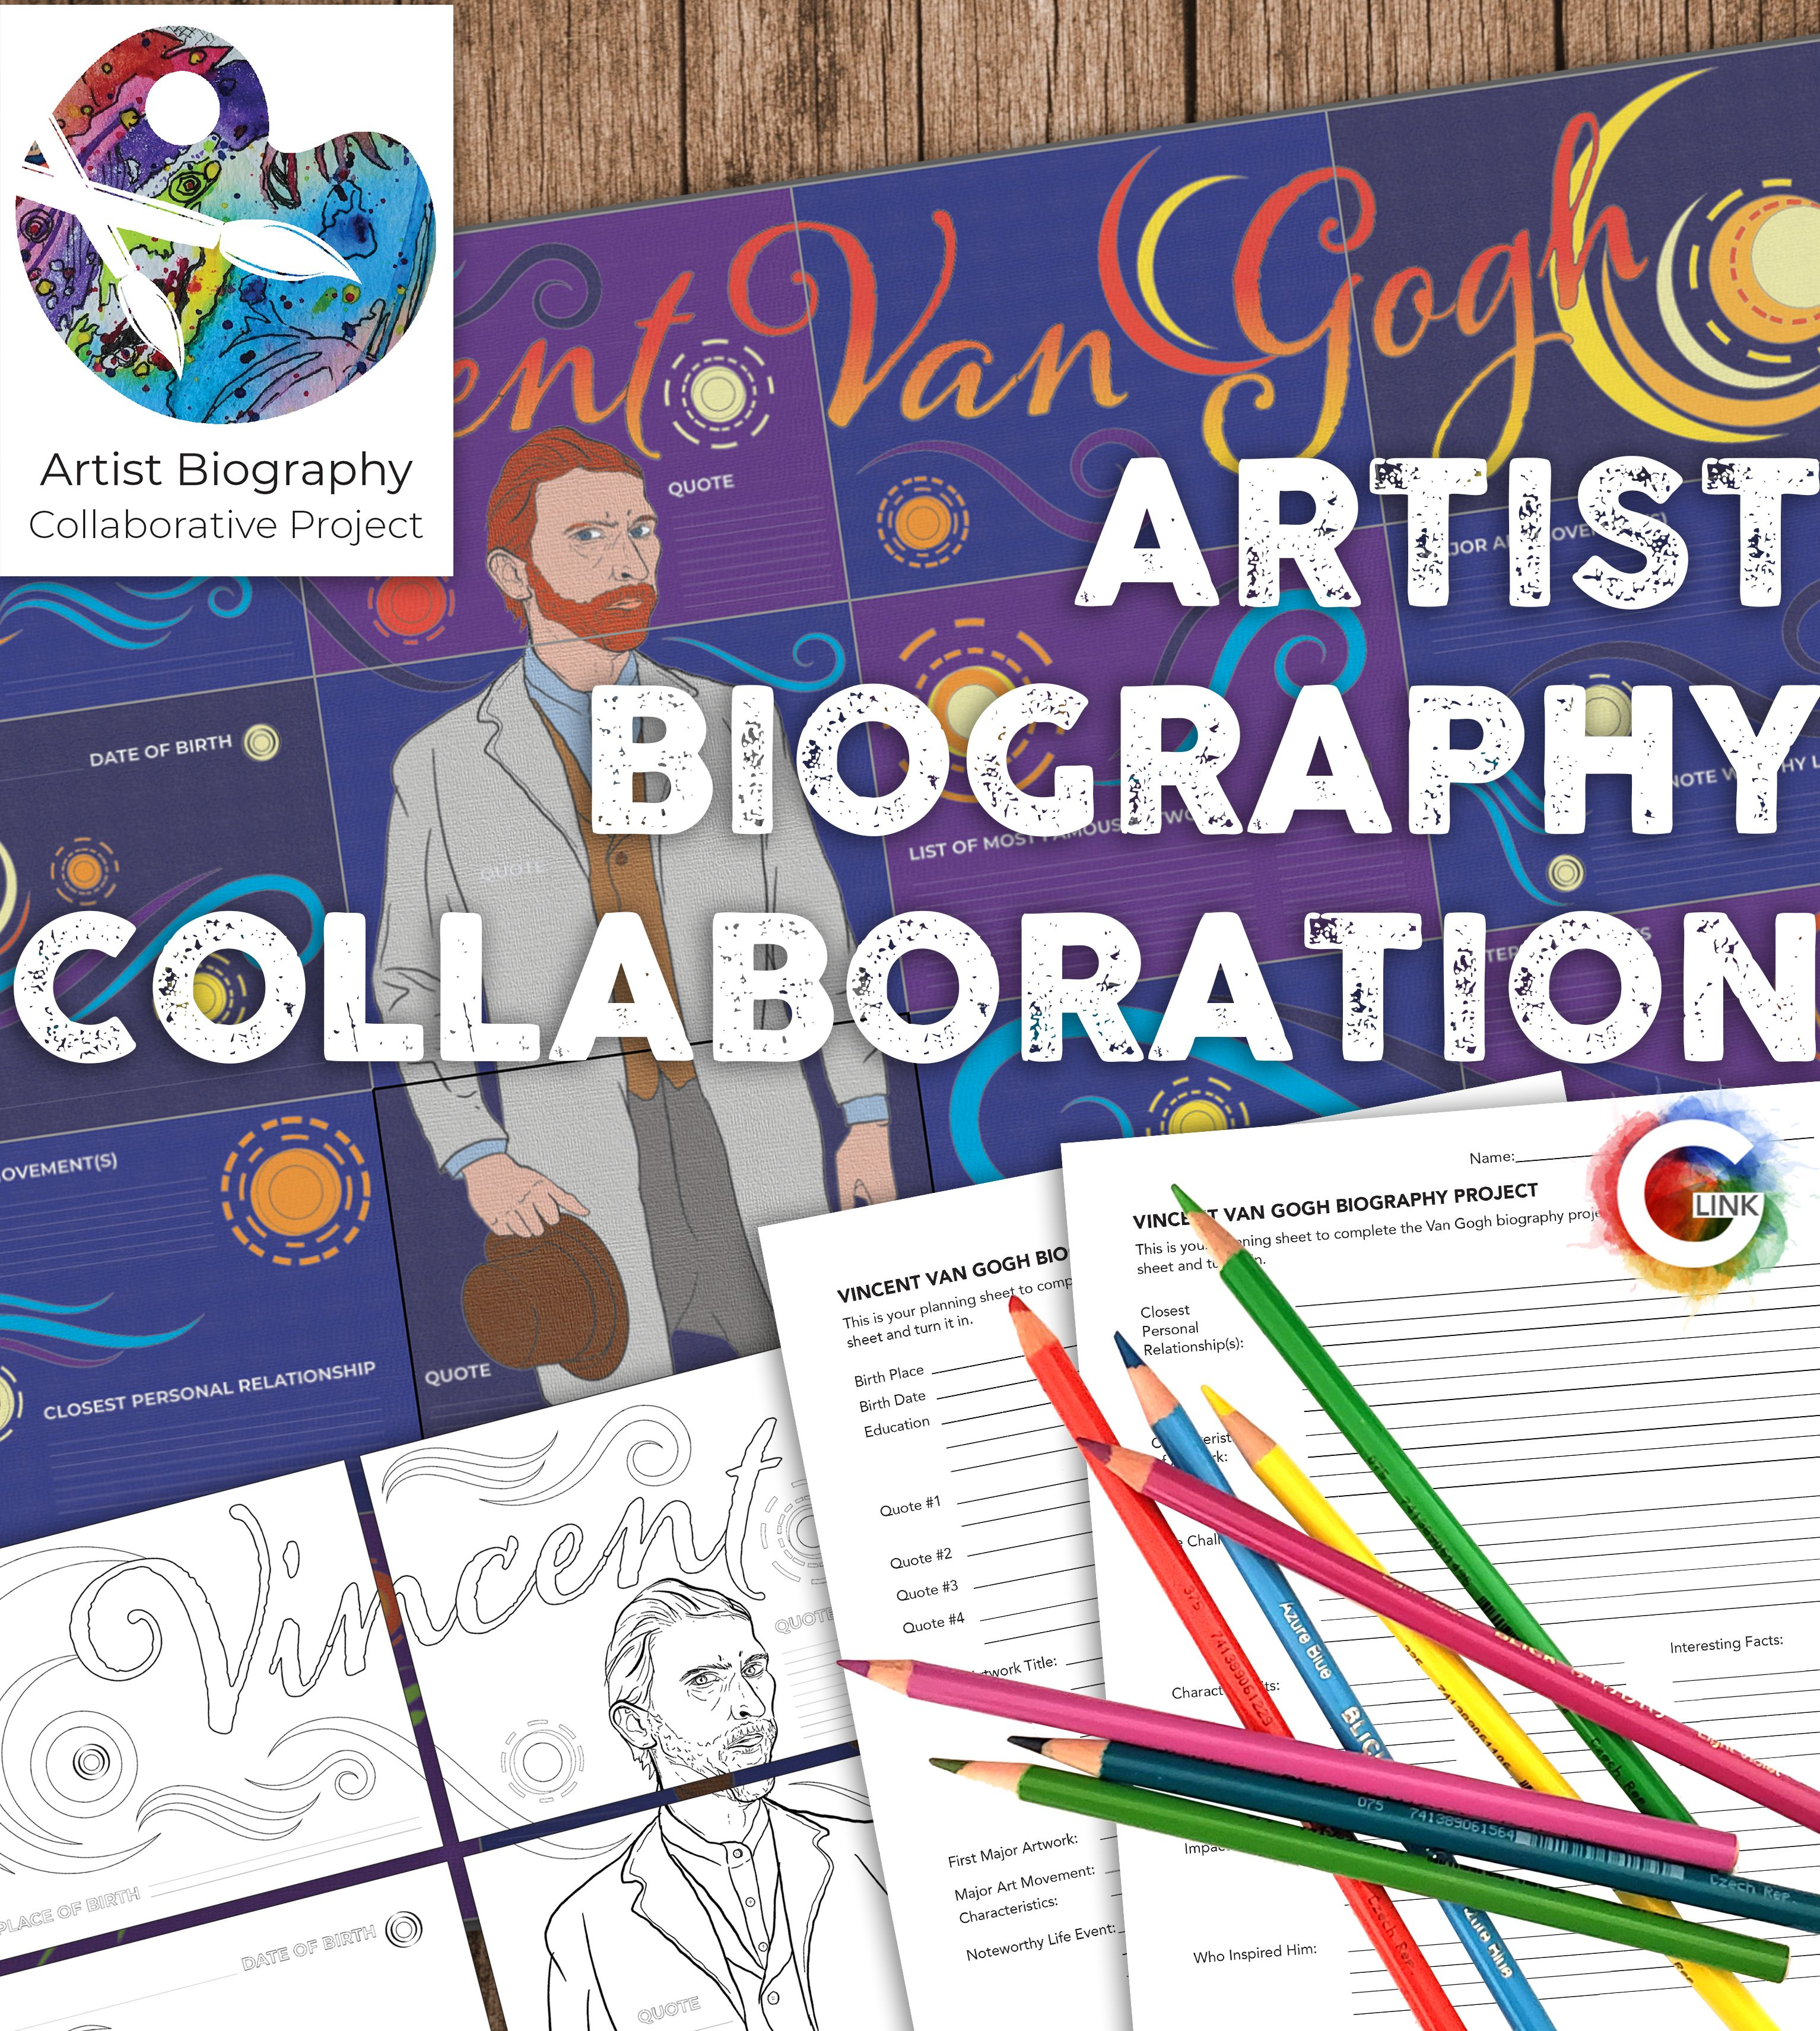 Artist Biography Collaborative Poster